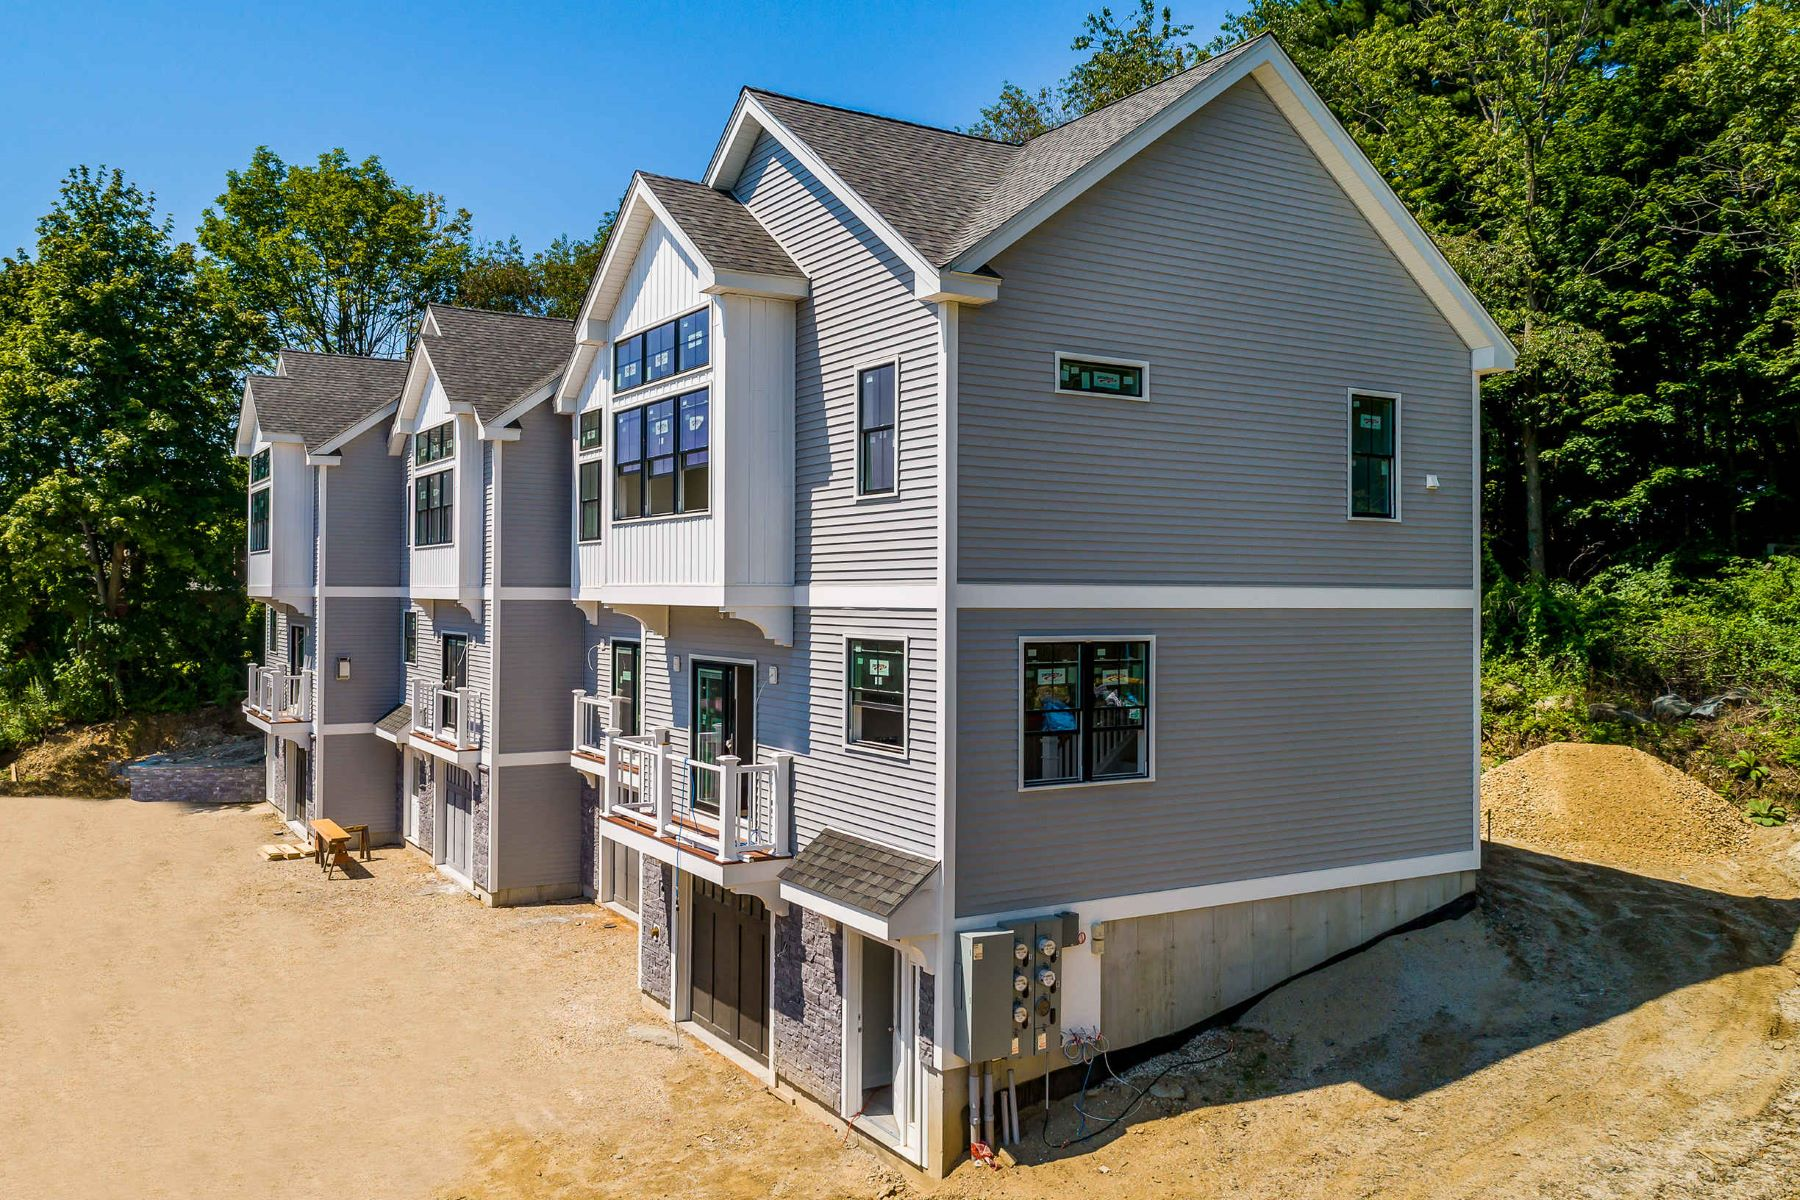 Condominiums for Sale at Newly Constructed Condominium in Kittery Foreside 12 Bridge Street Unit 2 Kittery, Maine 03904 United States